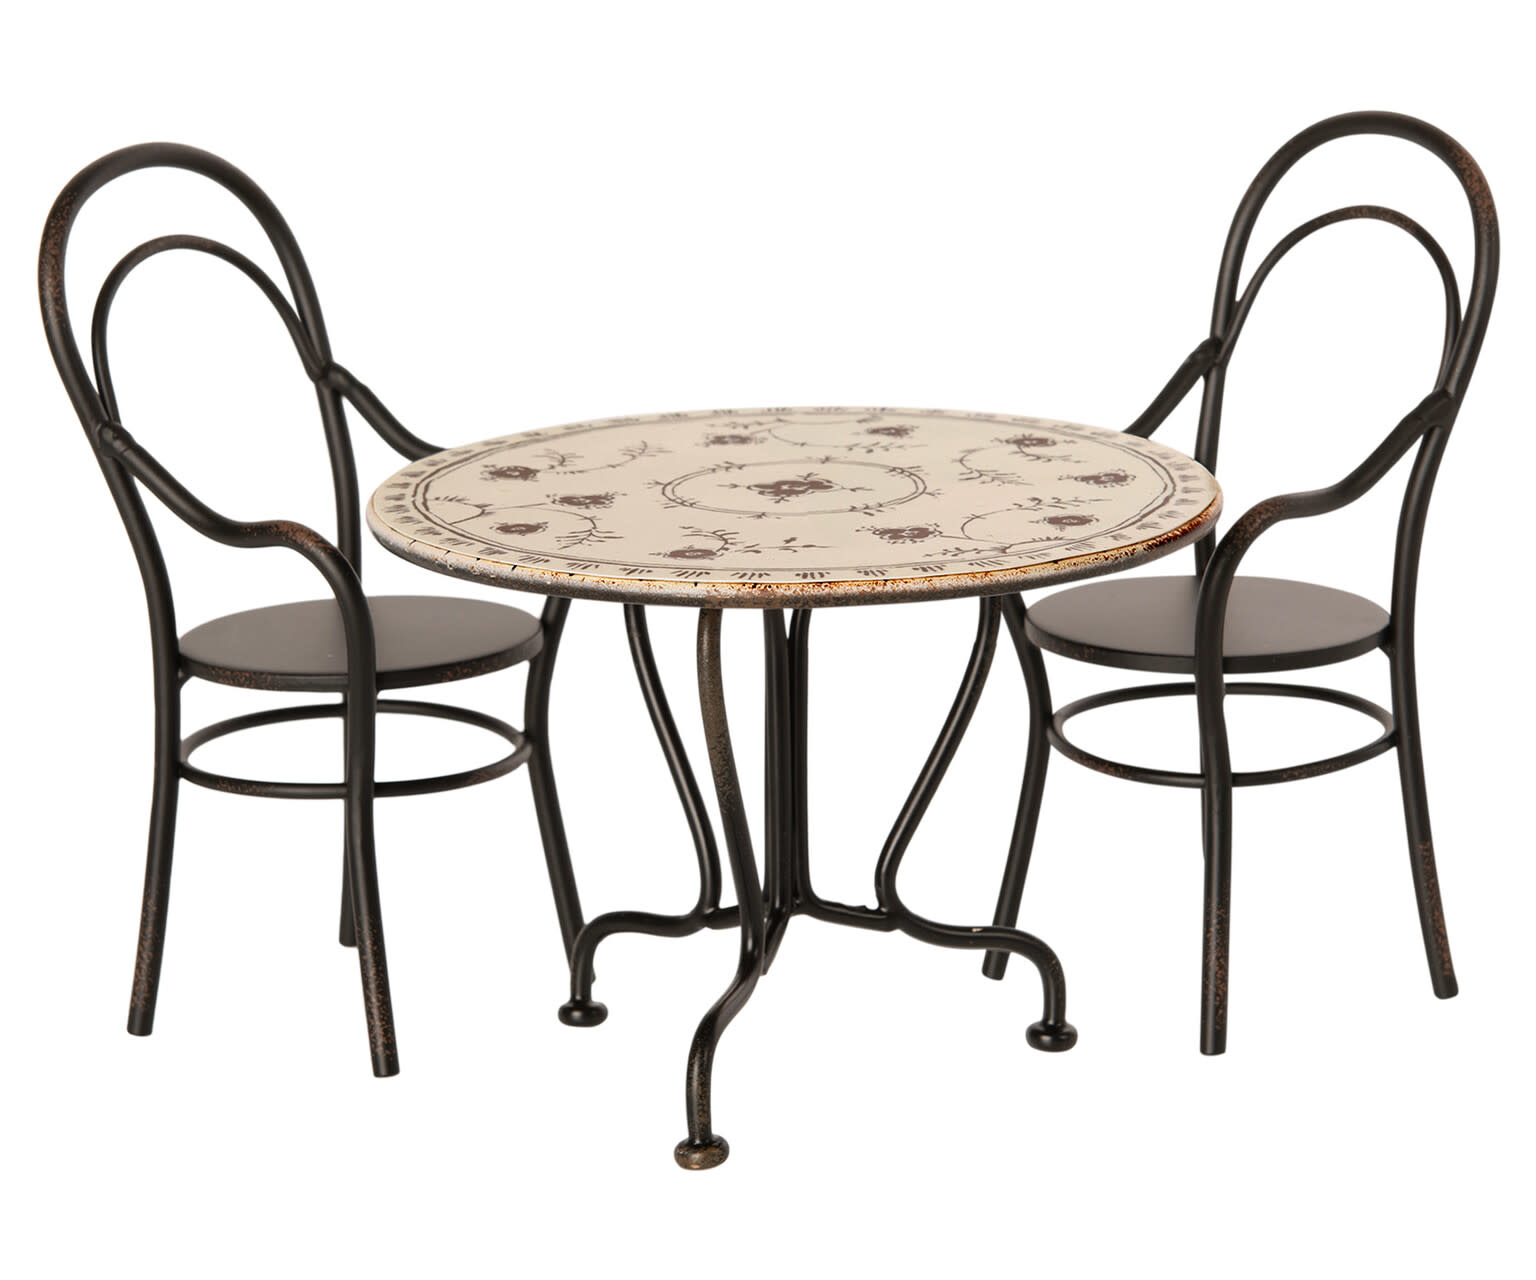 Dining table set with 2 chairs-1